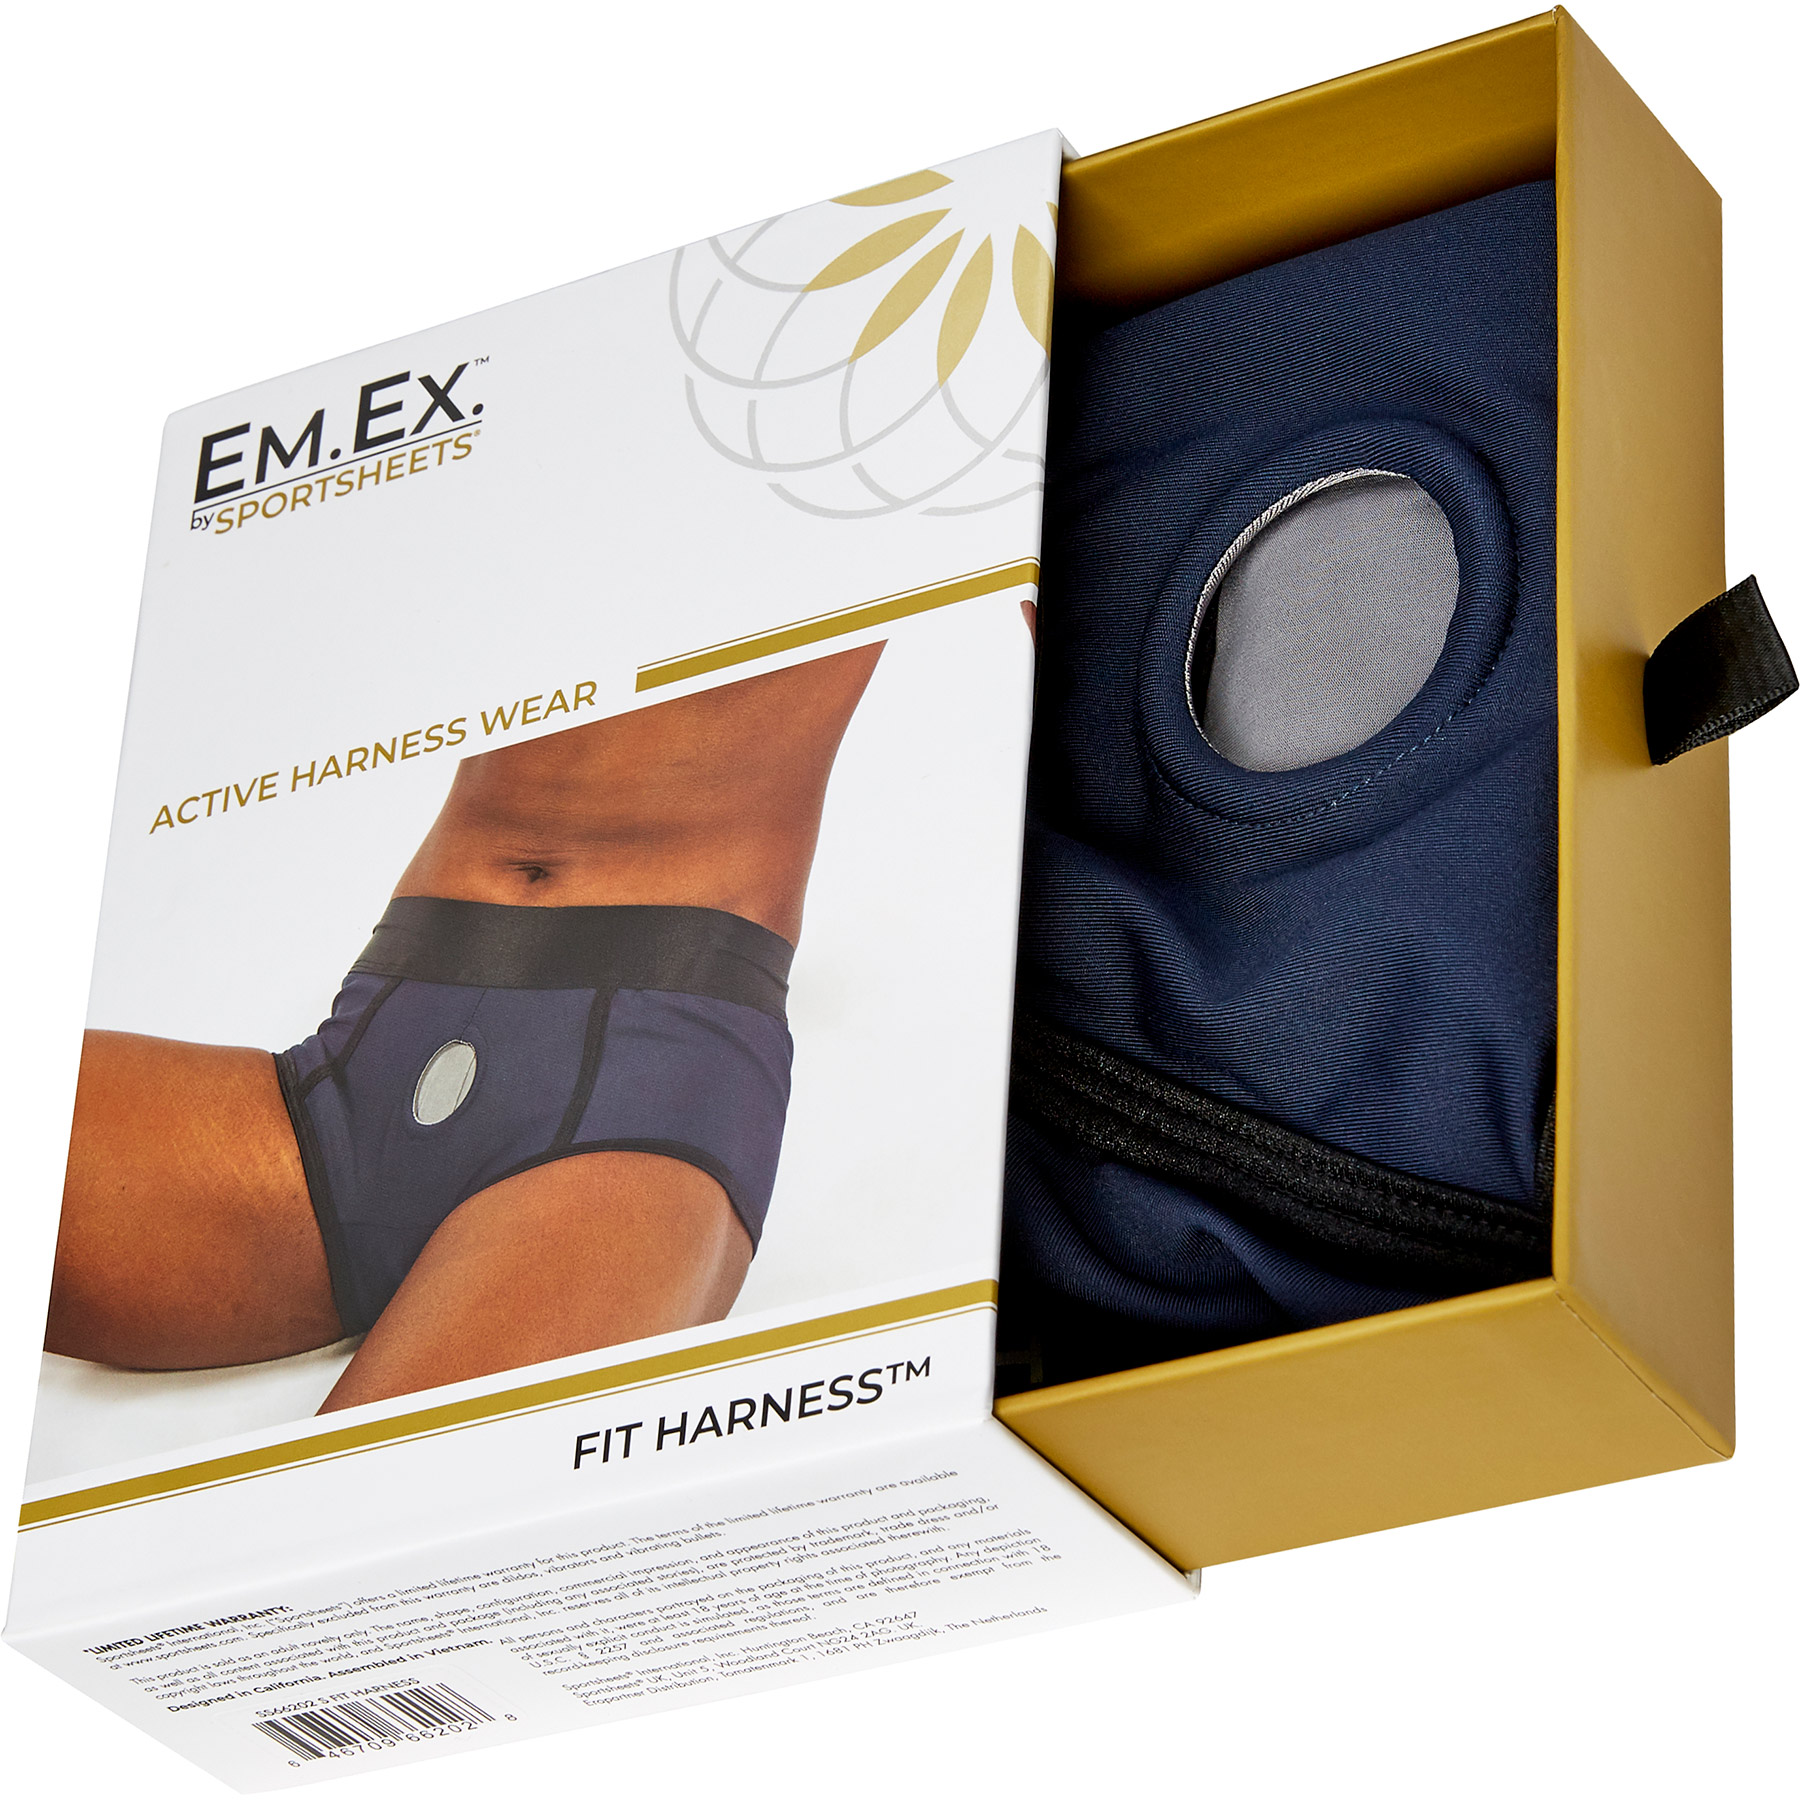 EM.EX. Active Harness Wear - Fit Strap-On Harness Brief - Package